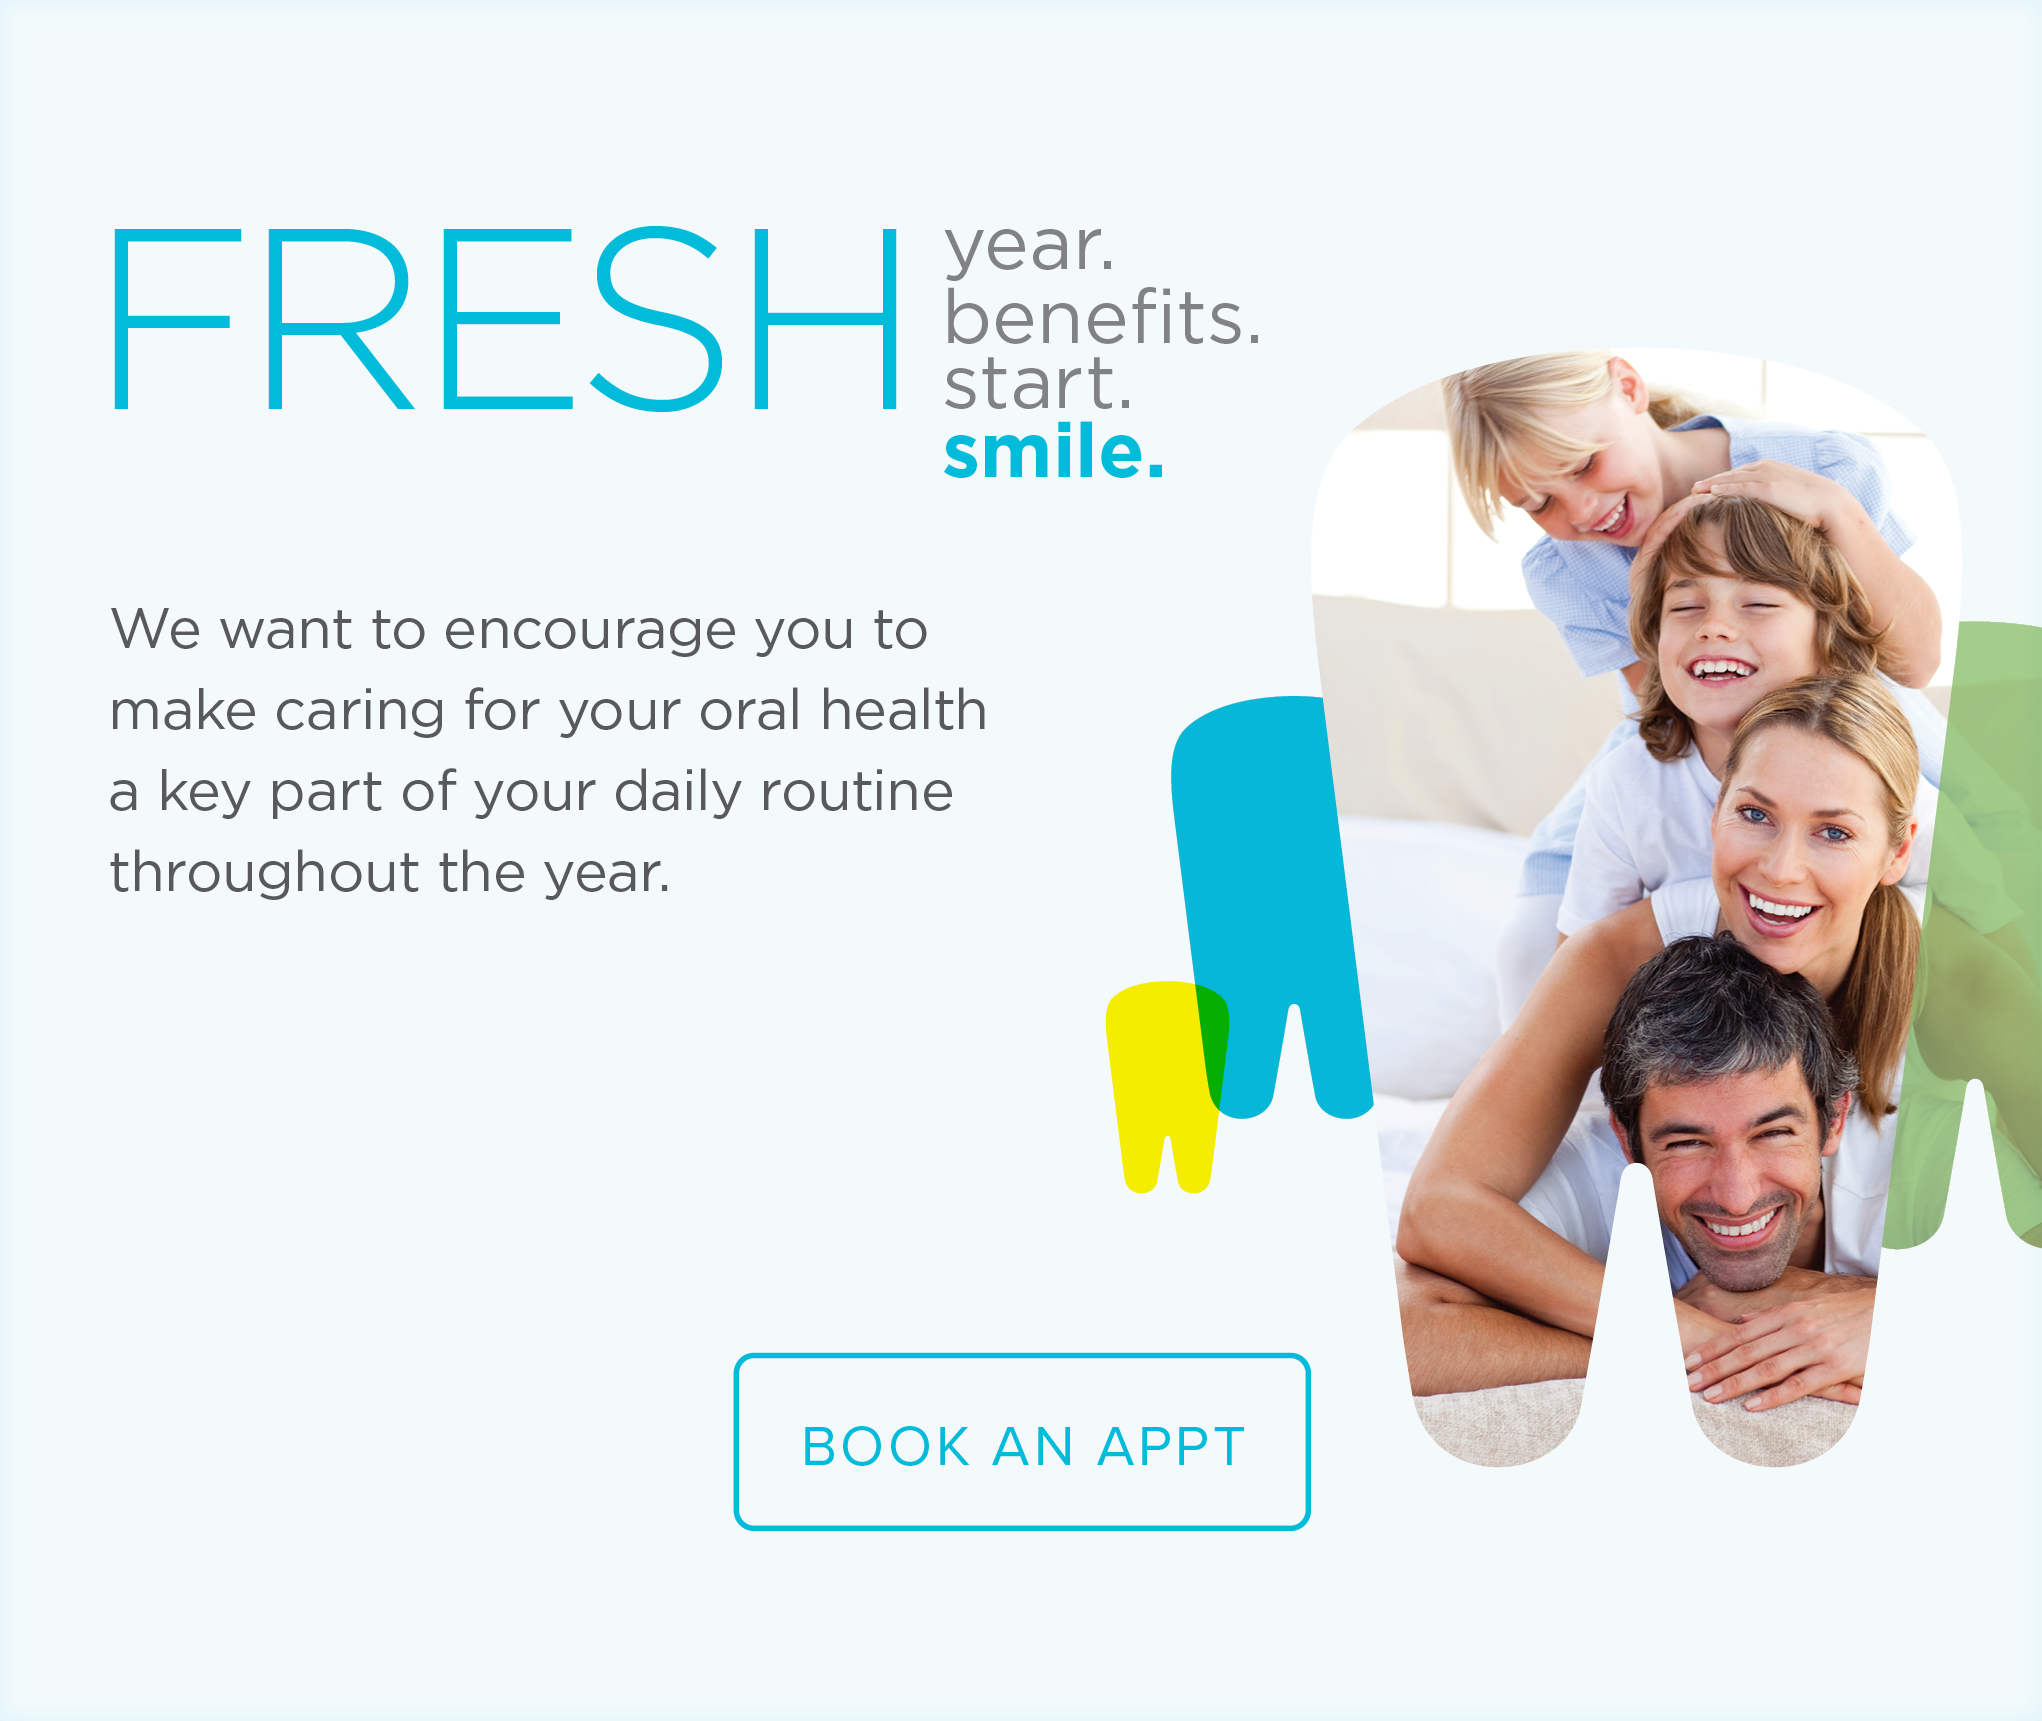 Donelson Smiles Dentistry - Make the Most of Your Benefits